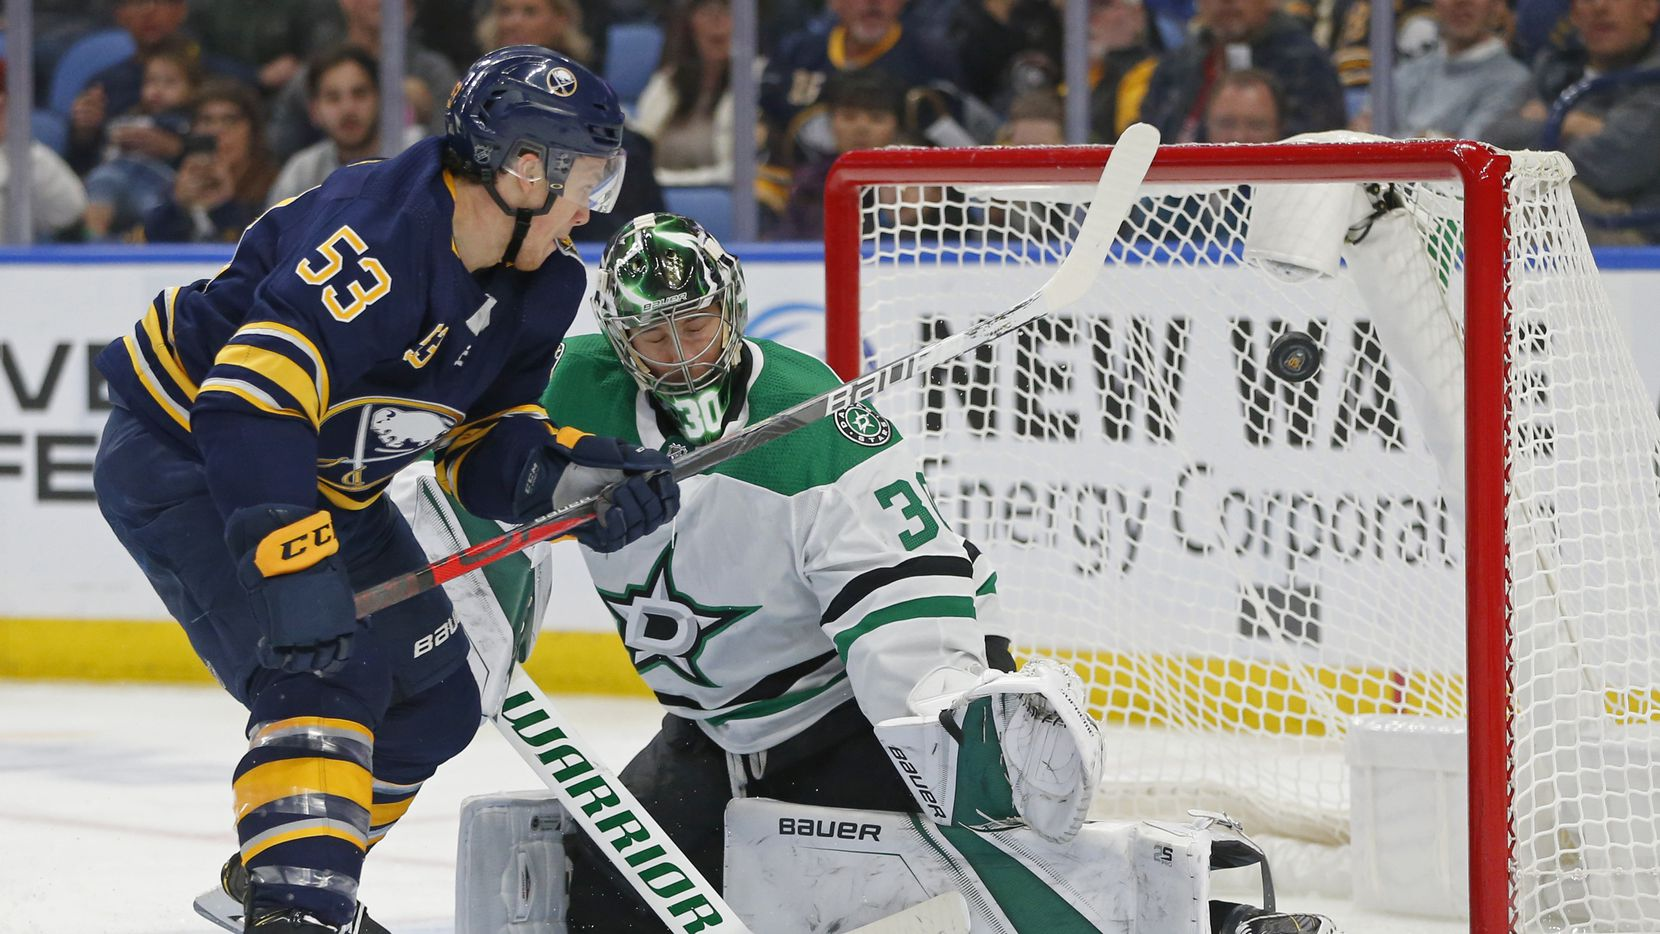 Buffalo Sabres forward Jeff Skinner (13) scores on Dallas Stars goalie Ben Bishop (30) during the third period of an NHL hockey game, Monday, Oct. 14, 2019, in Buffalo N.Y.